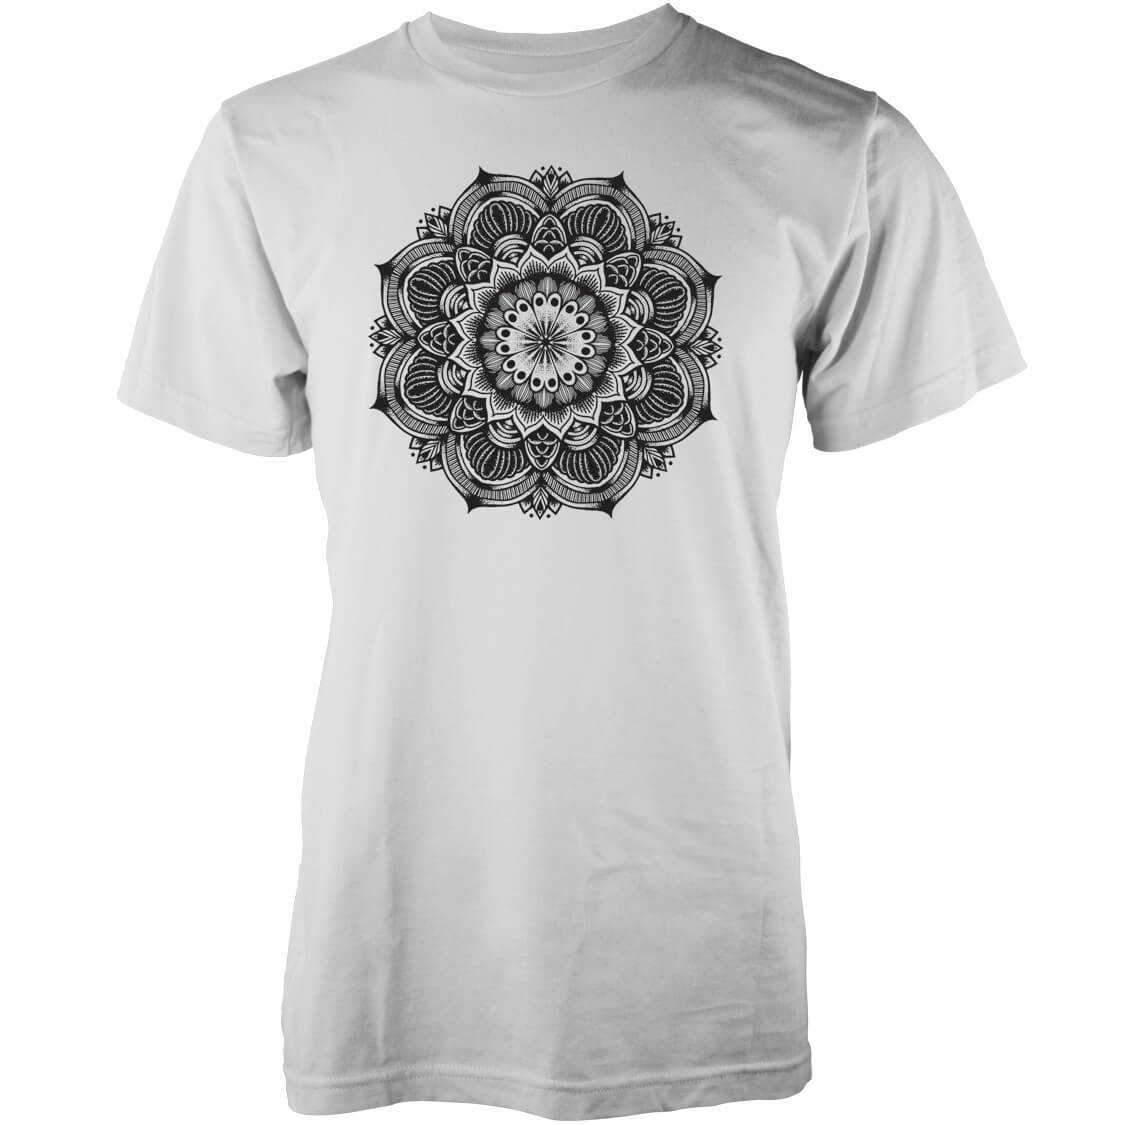 Abandon Ship Men's Mandala T-Shirt - White - M - White